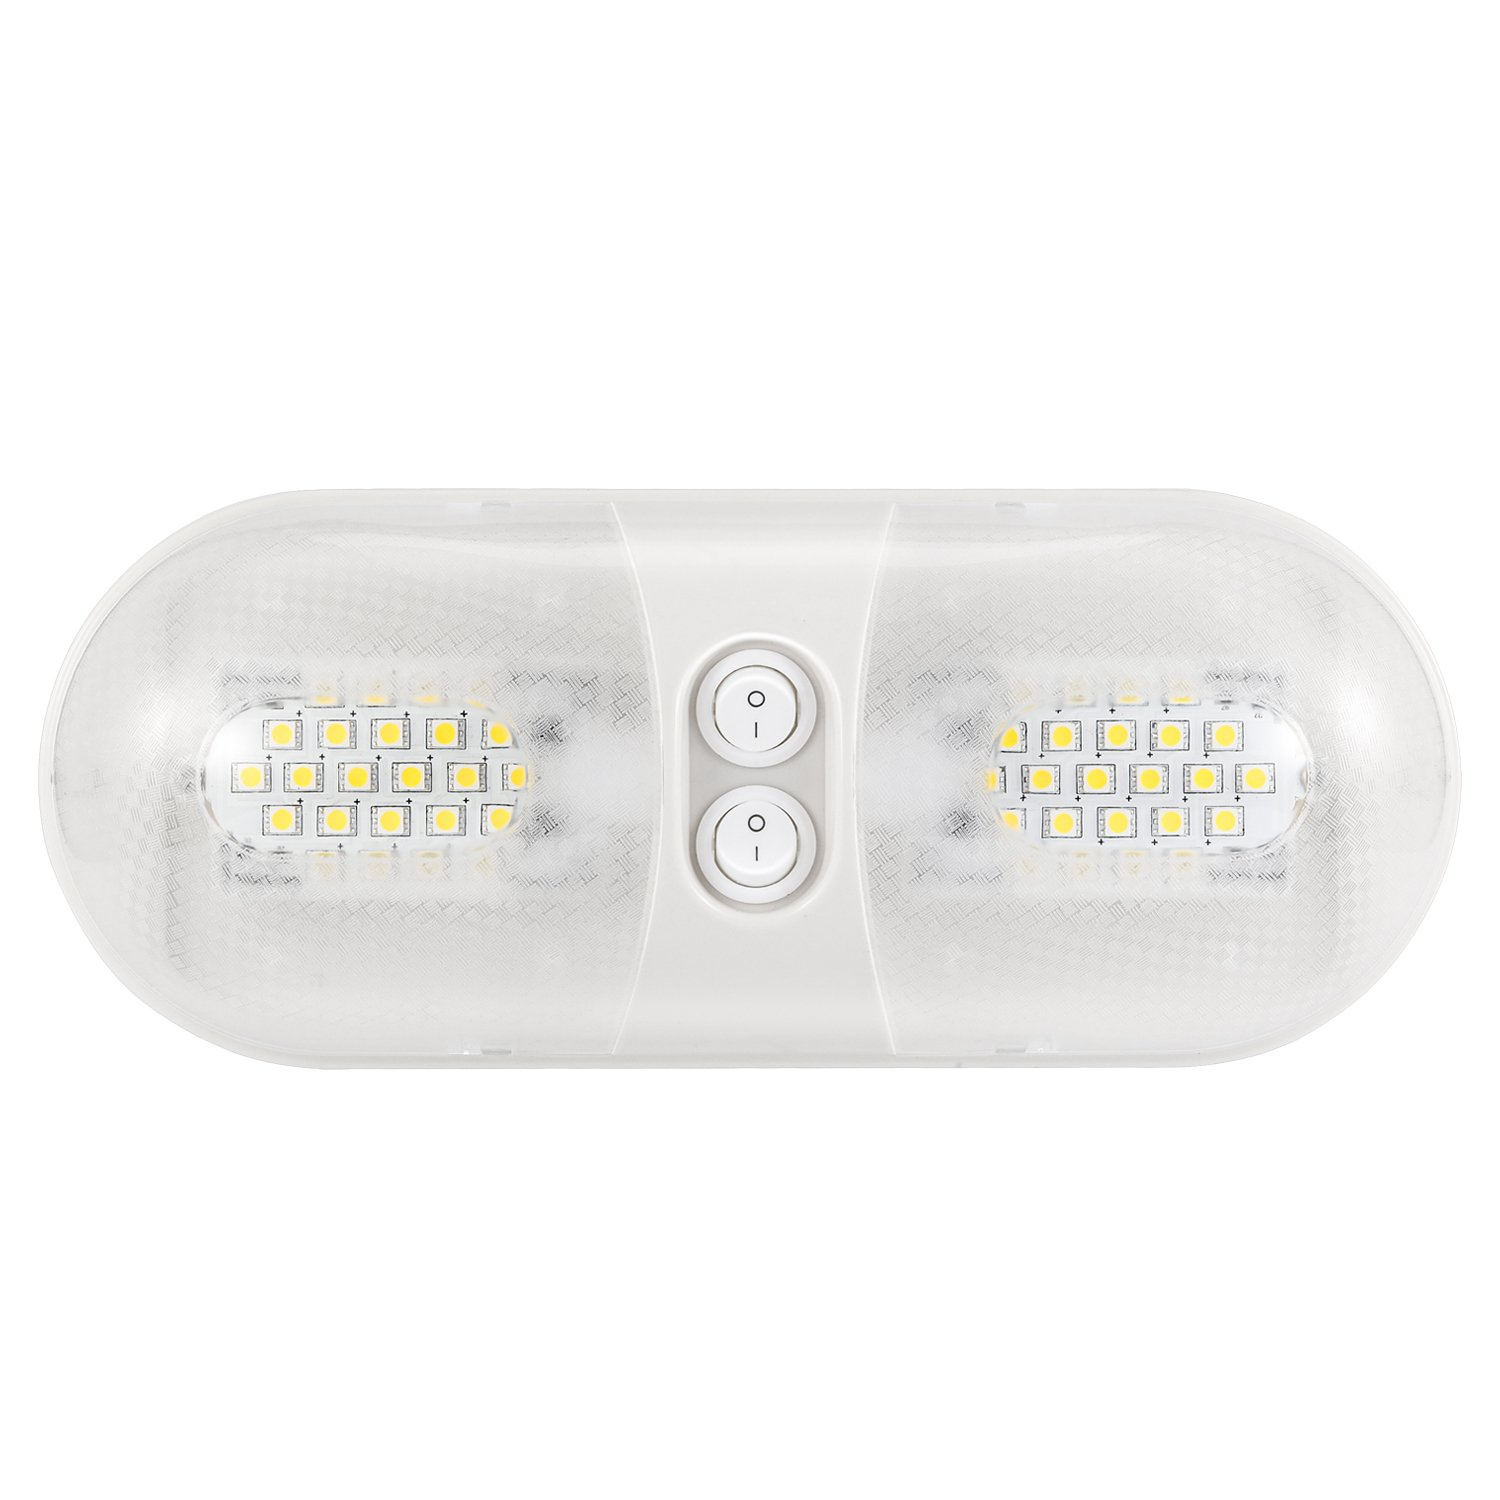 Kohree 12V LED RV Ceiling Dome Light Fixture, RV Interior Lighting for Trailer Camper with Switch Natural White